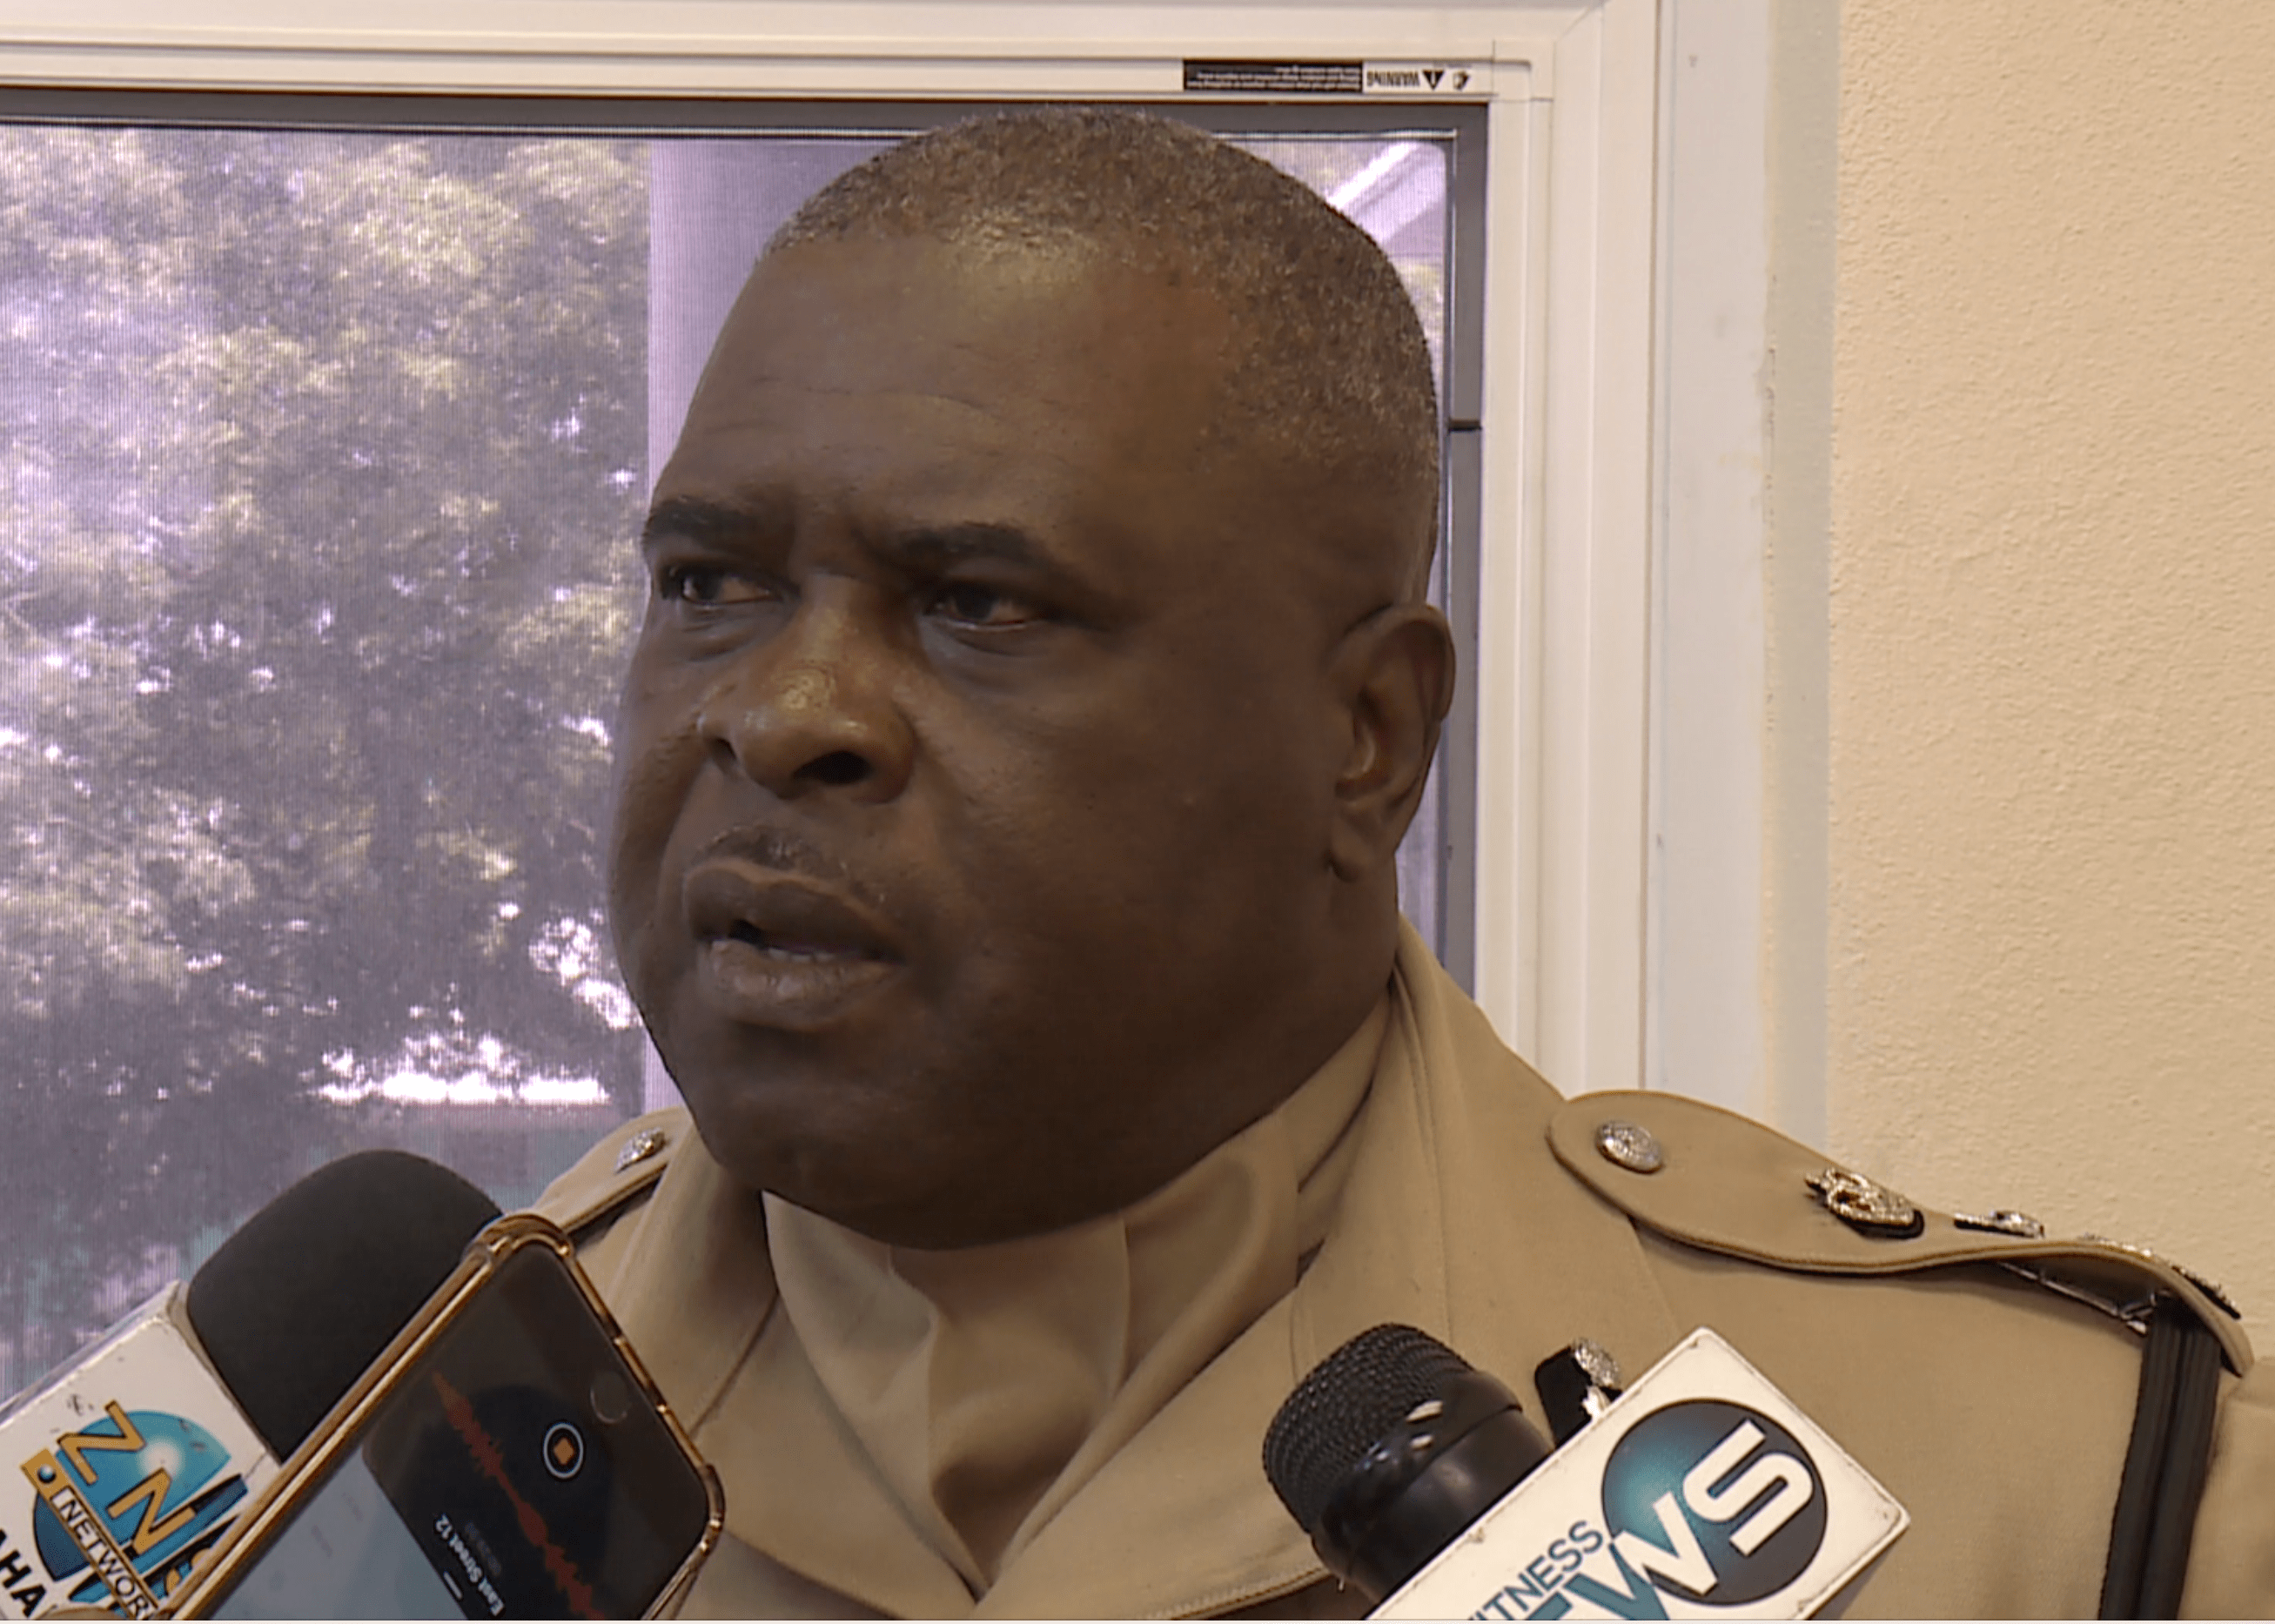 Commissioner launches investigation into voice notes attacking the RBPF